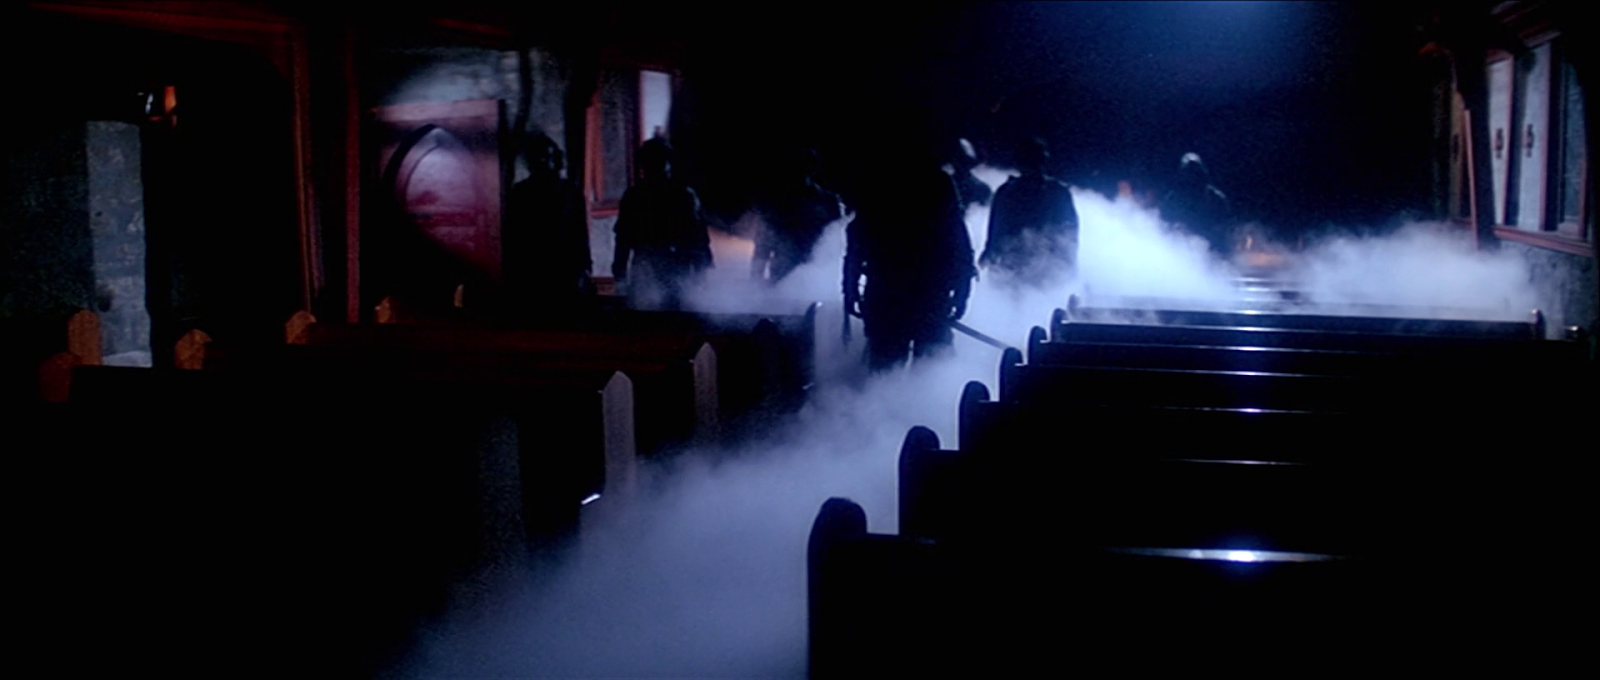 The ghosts in Carpenter's The Fog